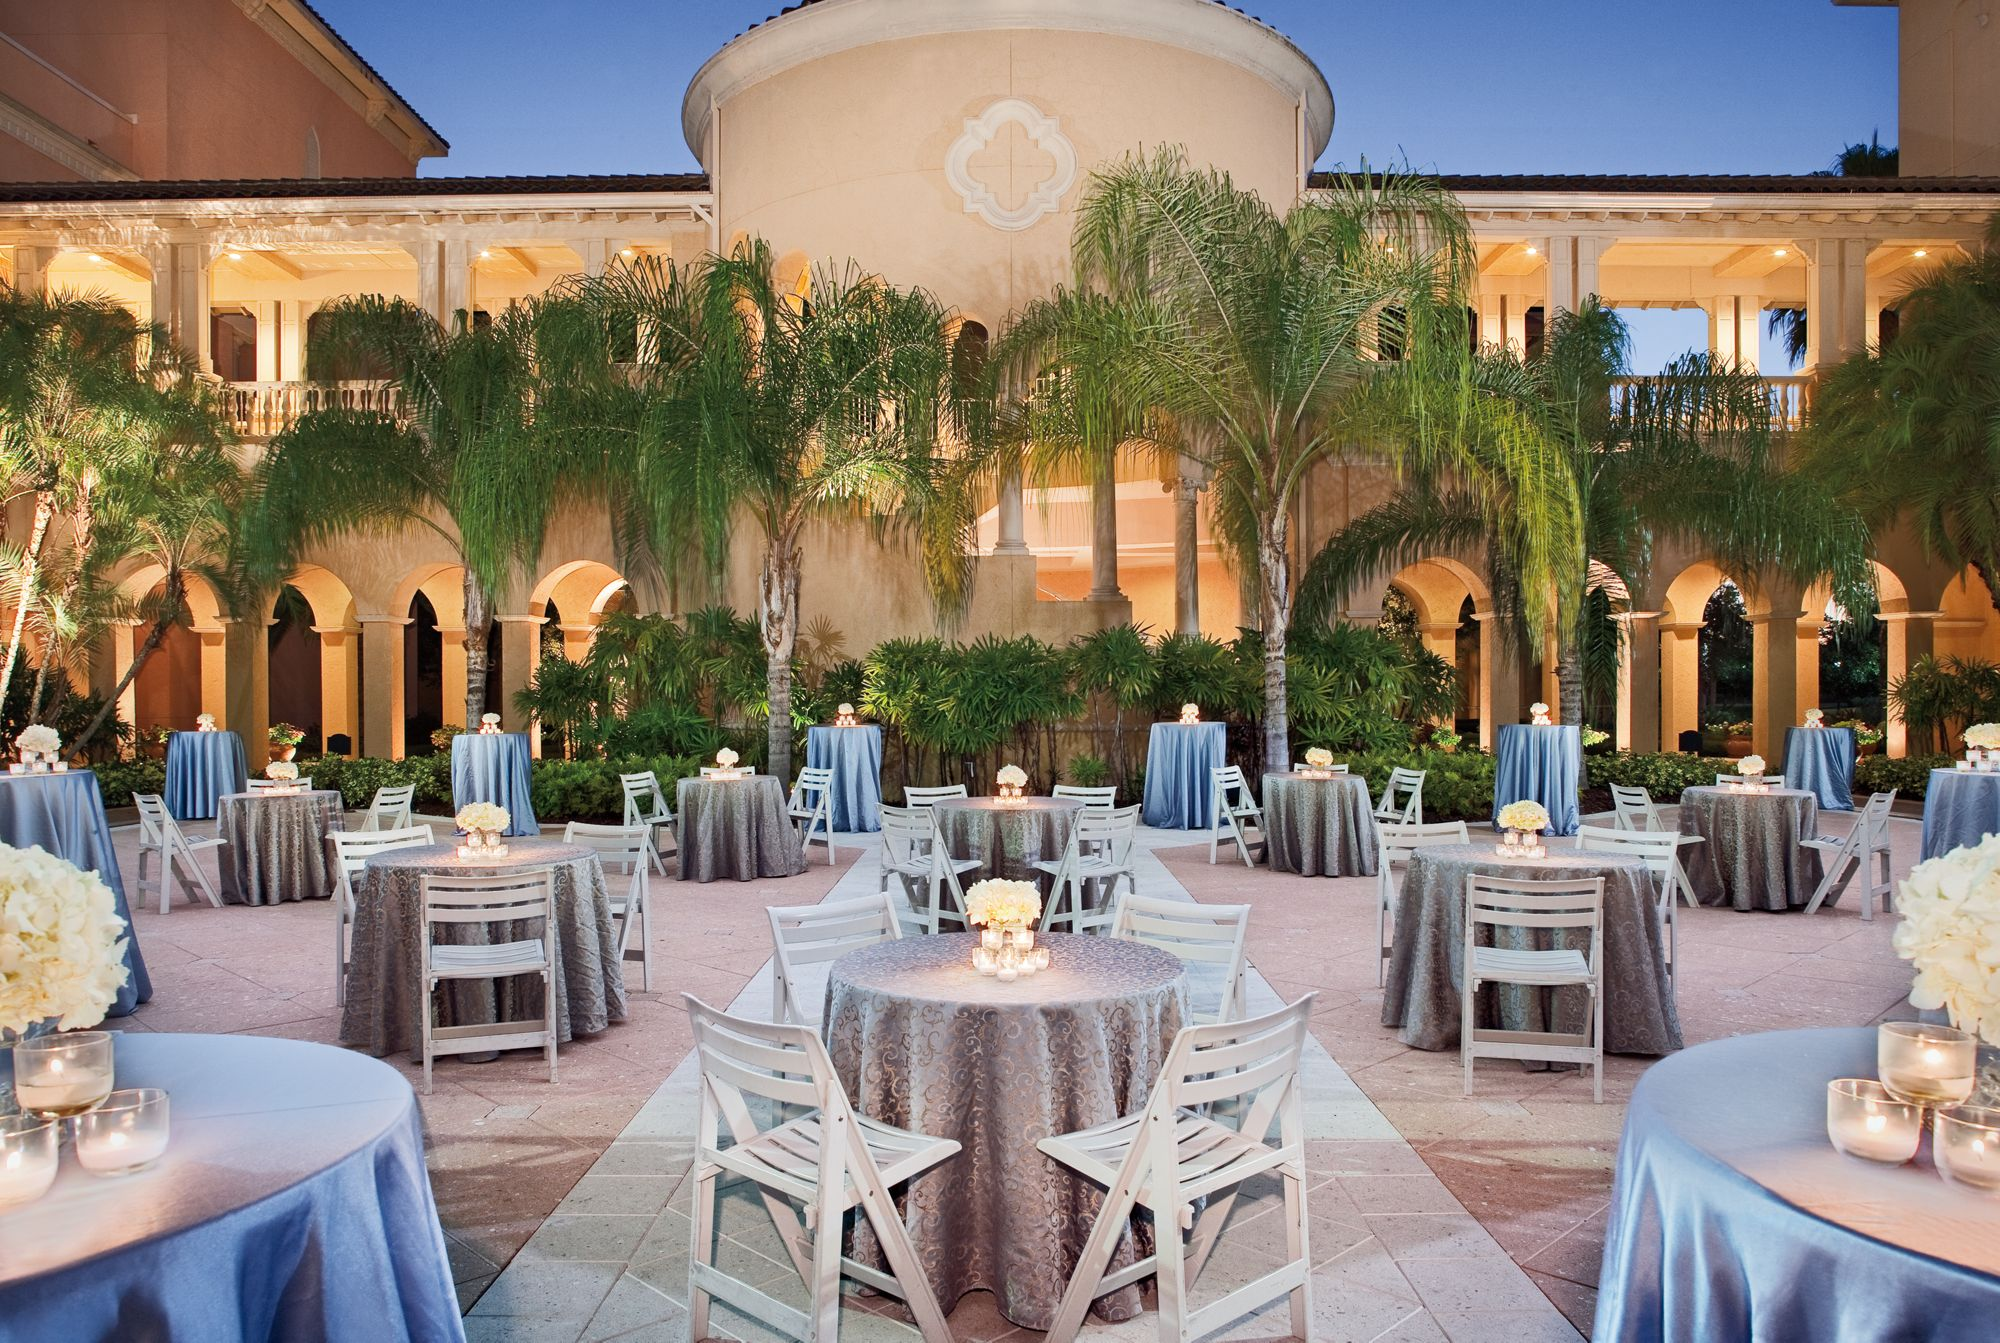 Wedding Venues Orlando.Outdoor Orlando Wedding Venues The Ritz Carlton Orlando